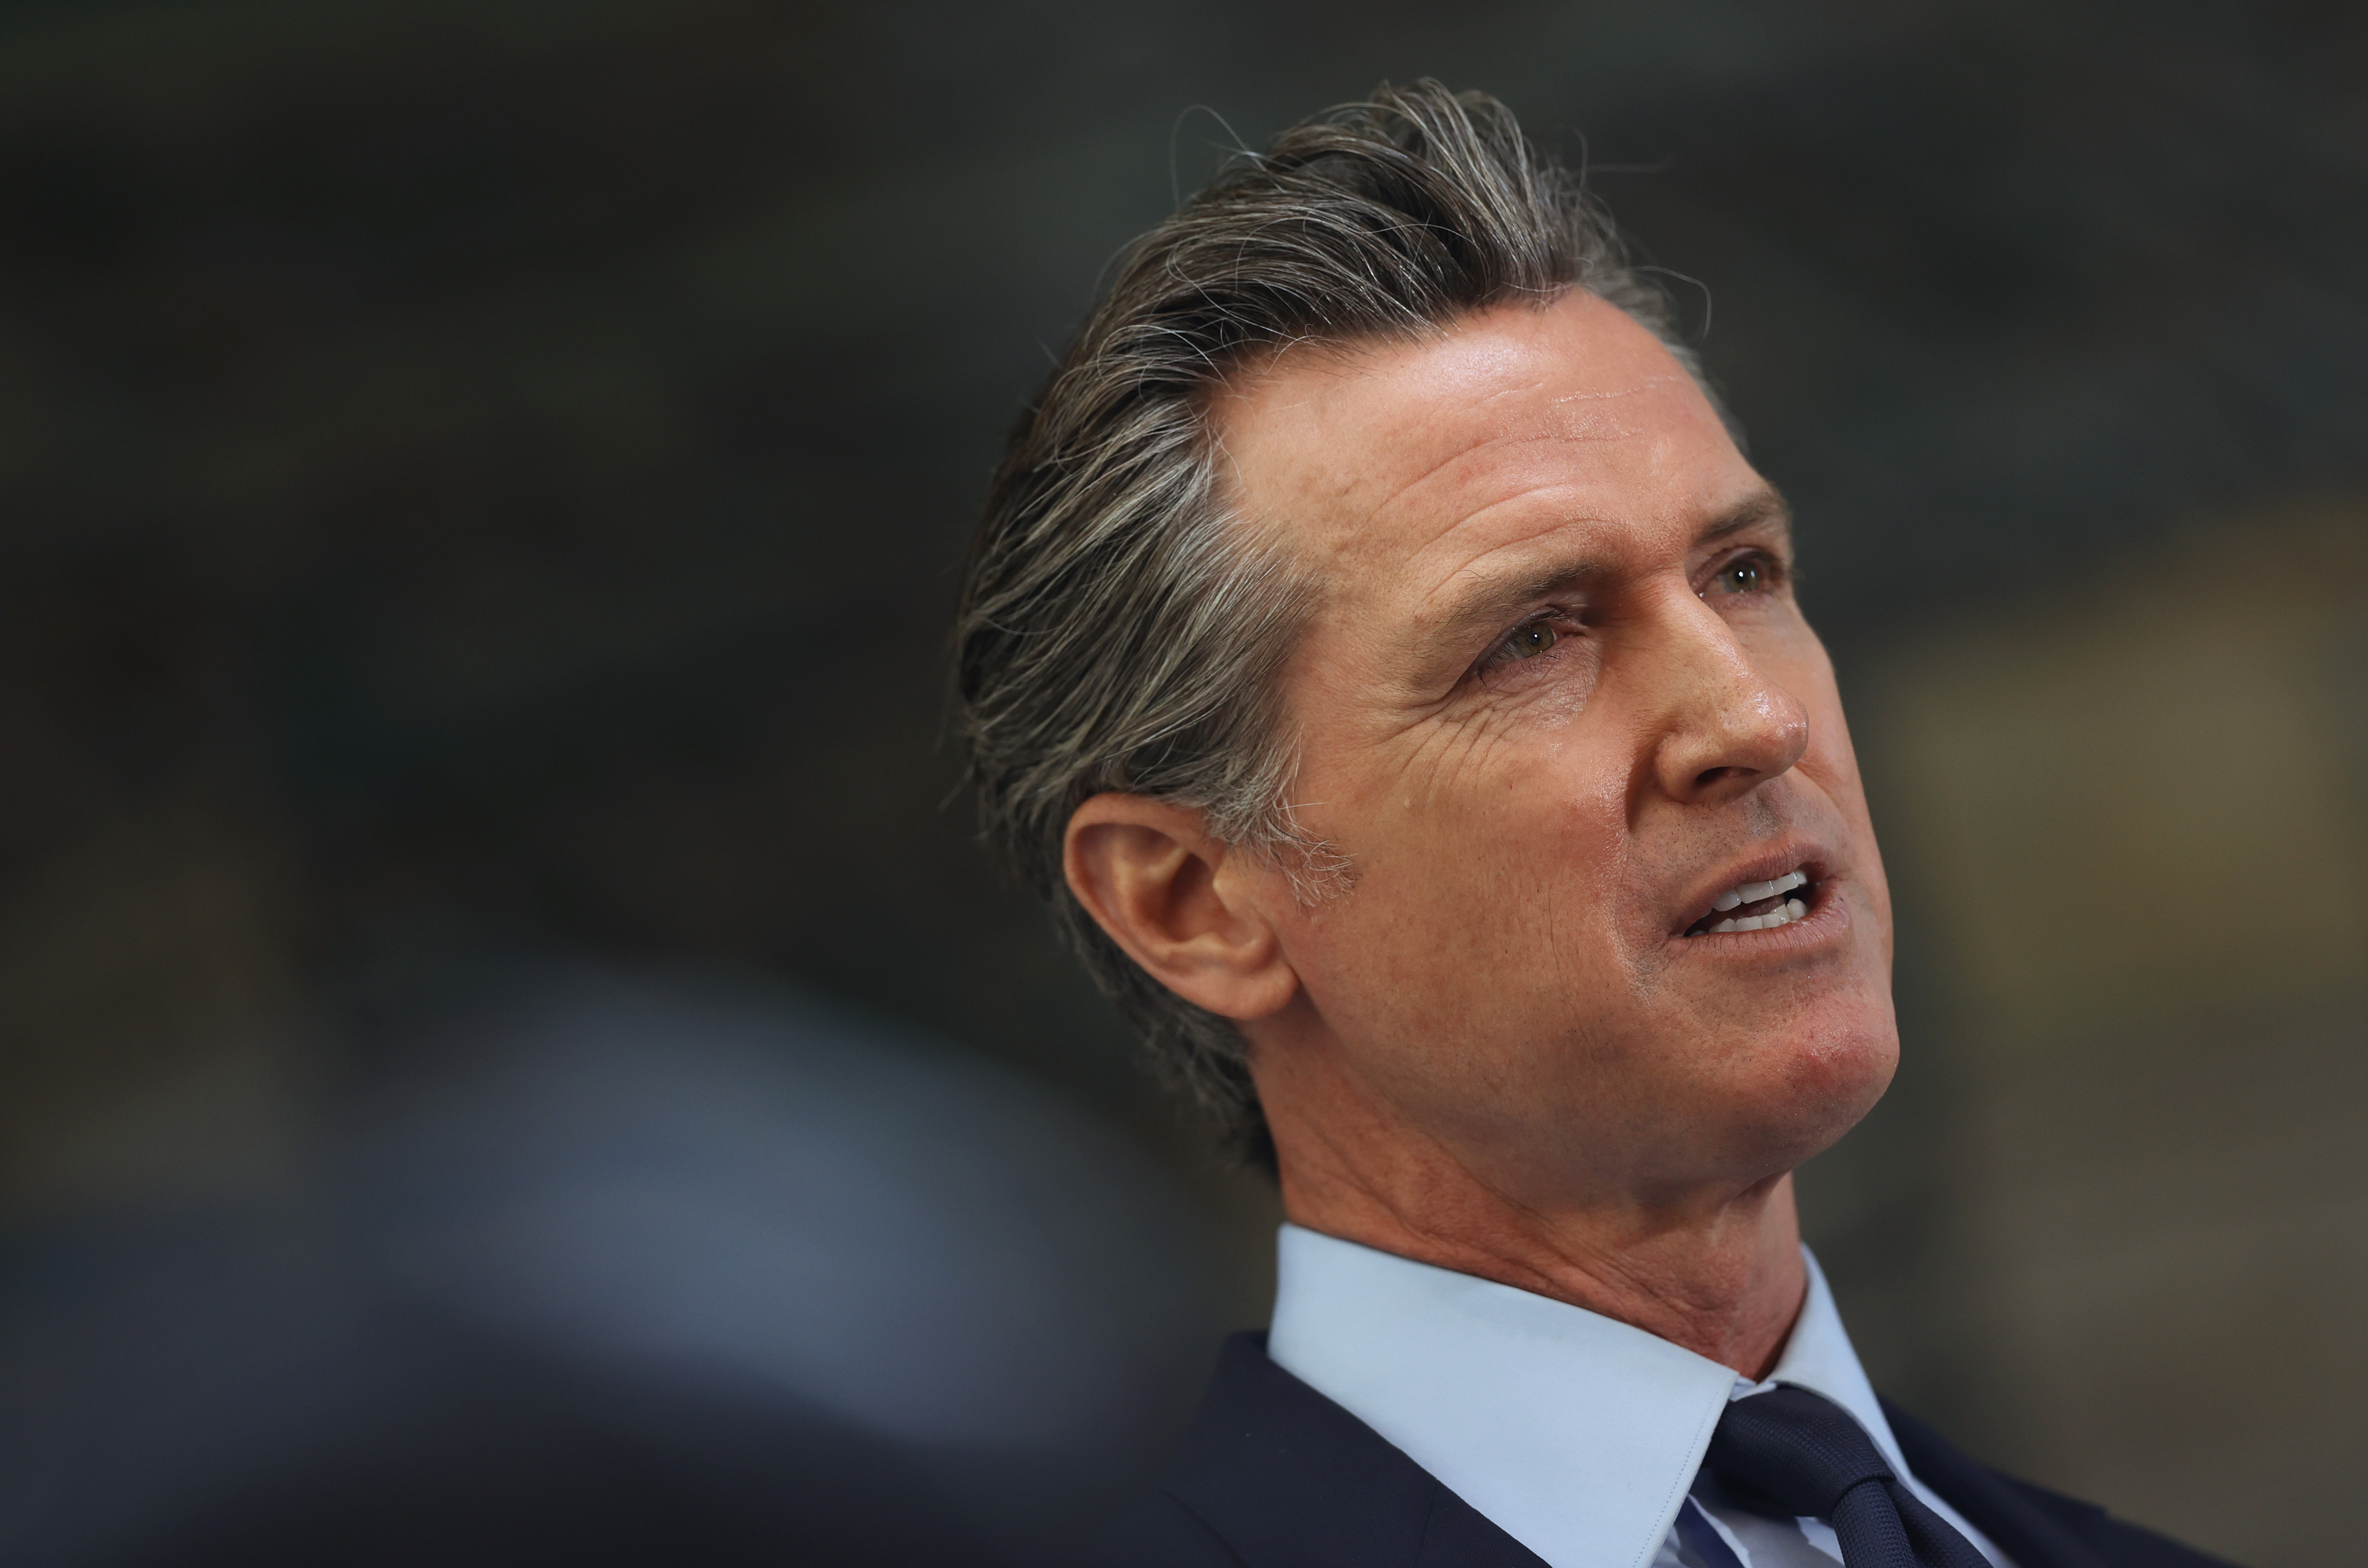 California Gov. Gavin Newsom looks on during a press conference at The Unity Council in Oakland, California. (Photo by Justin Sullivan/Getty Images)